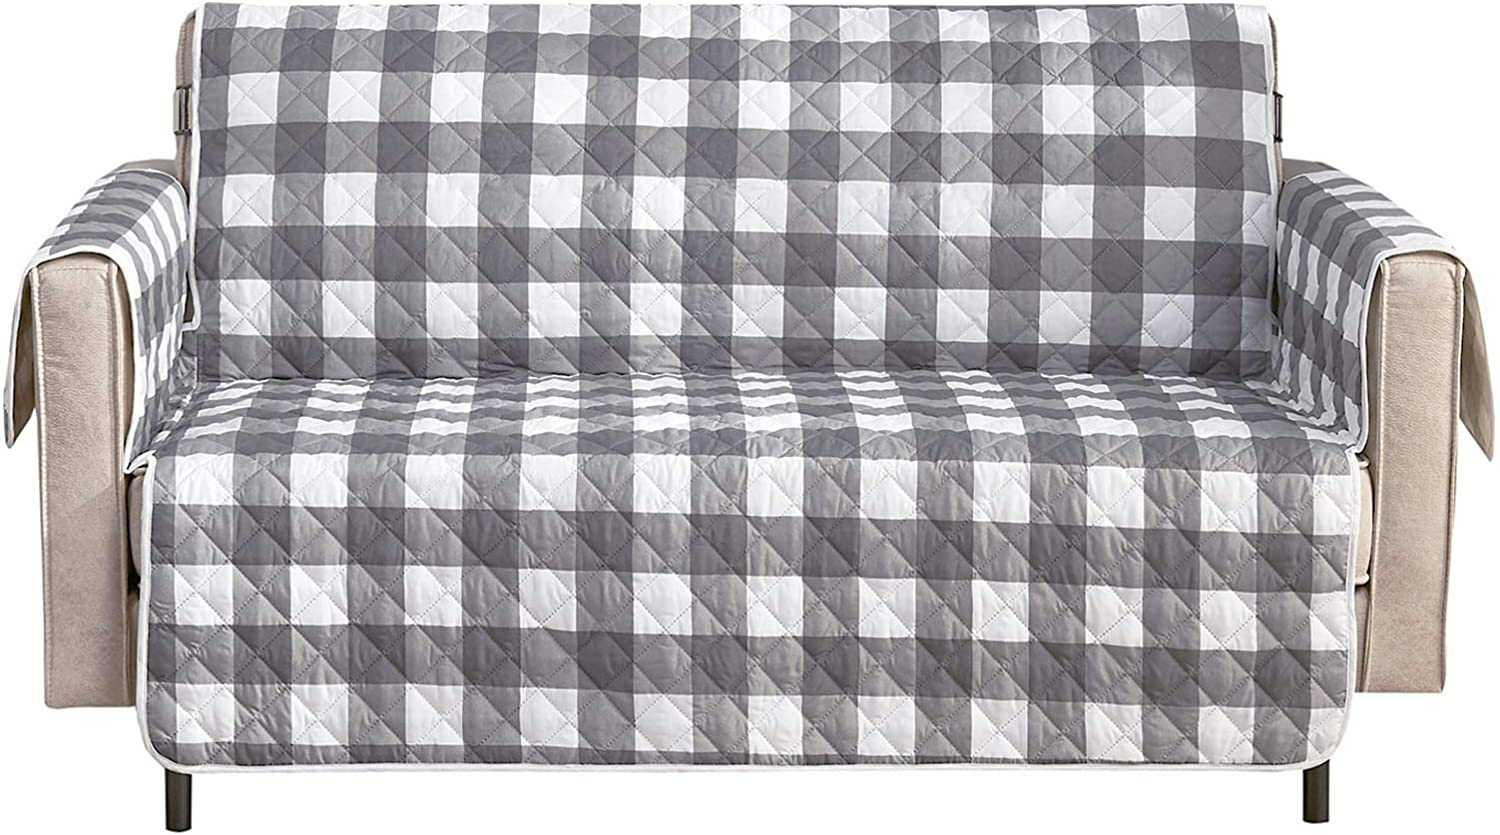 "Wake In Cloud - Sofa Cover 100% Waterproof Non-Slip, Pets Dogs Cat Kids Furniture Protector 2 Cushion Couch Slip Cover, Elastic Strap, Gray Grey White Buffalo Check Plaid (54"" Loveseat)"